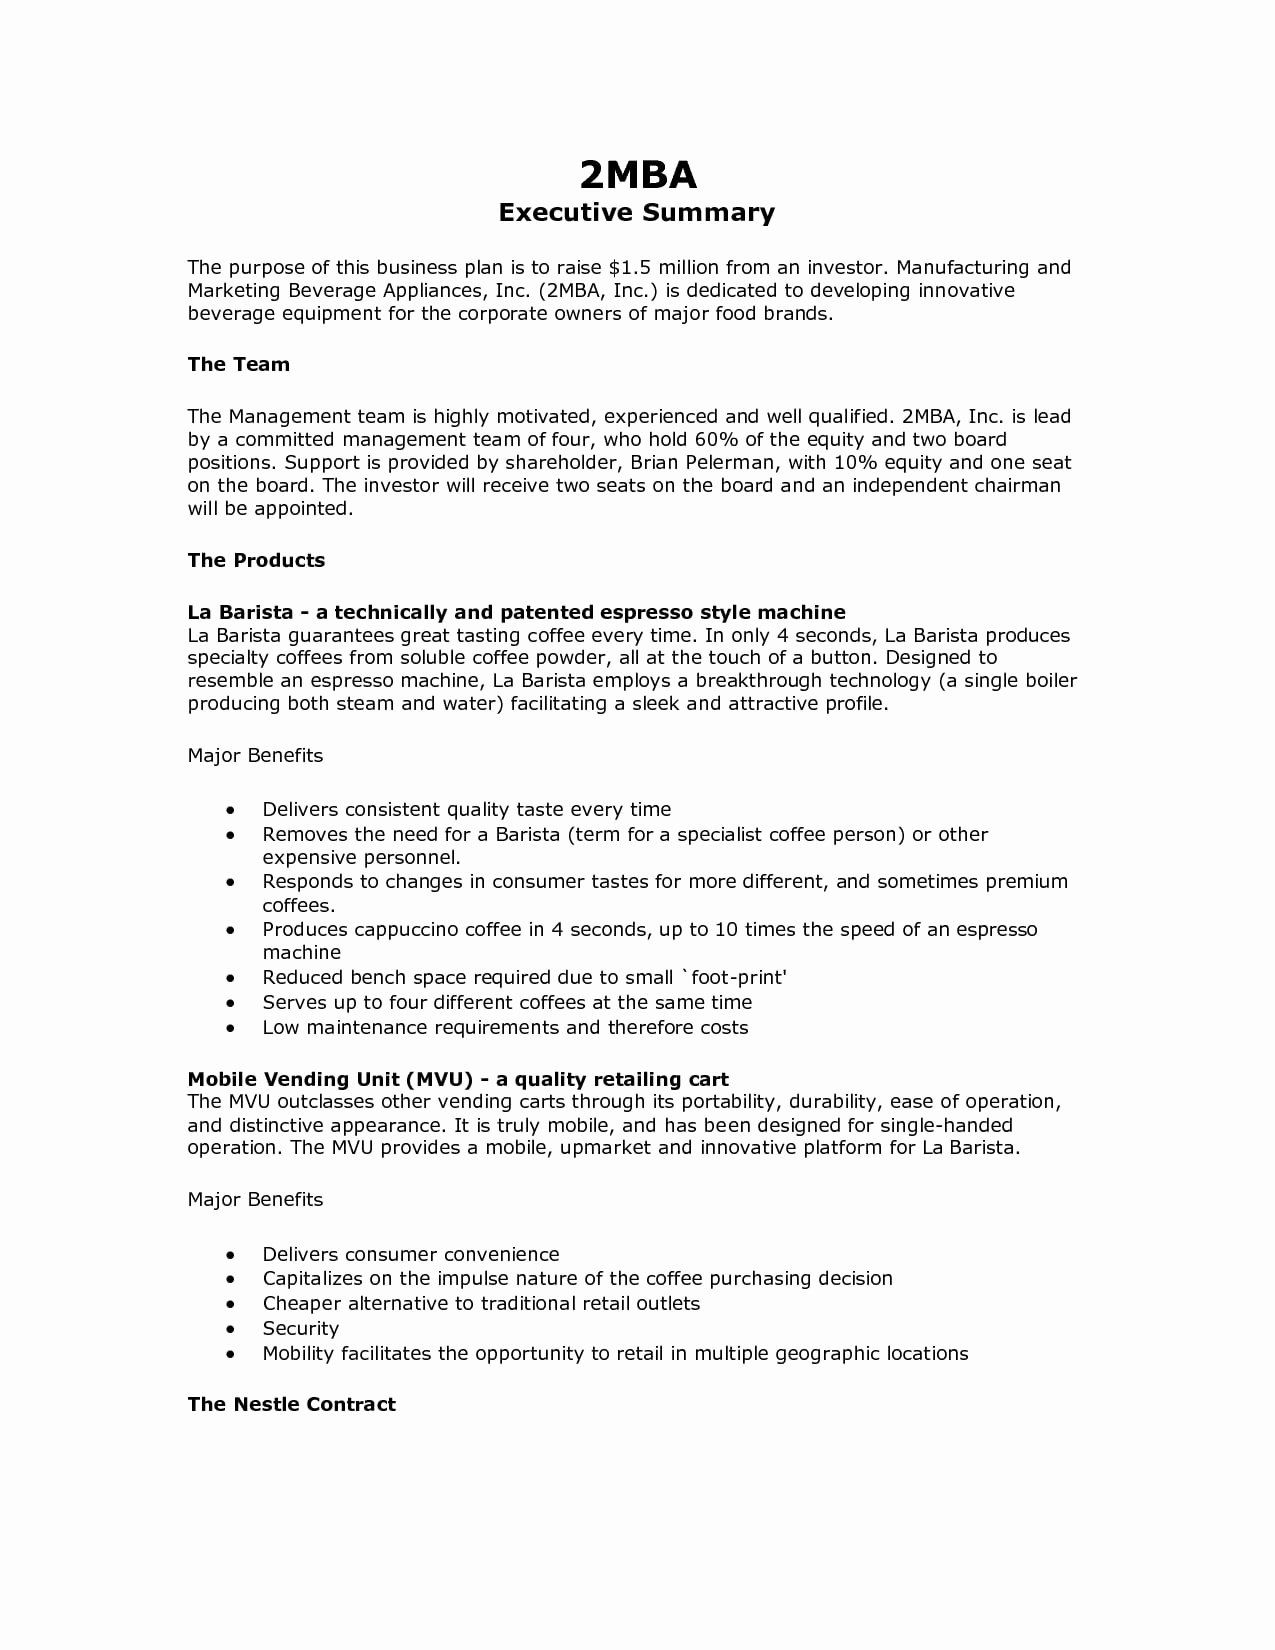 Business Summary Example Lovely 9 Executive Summary